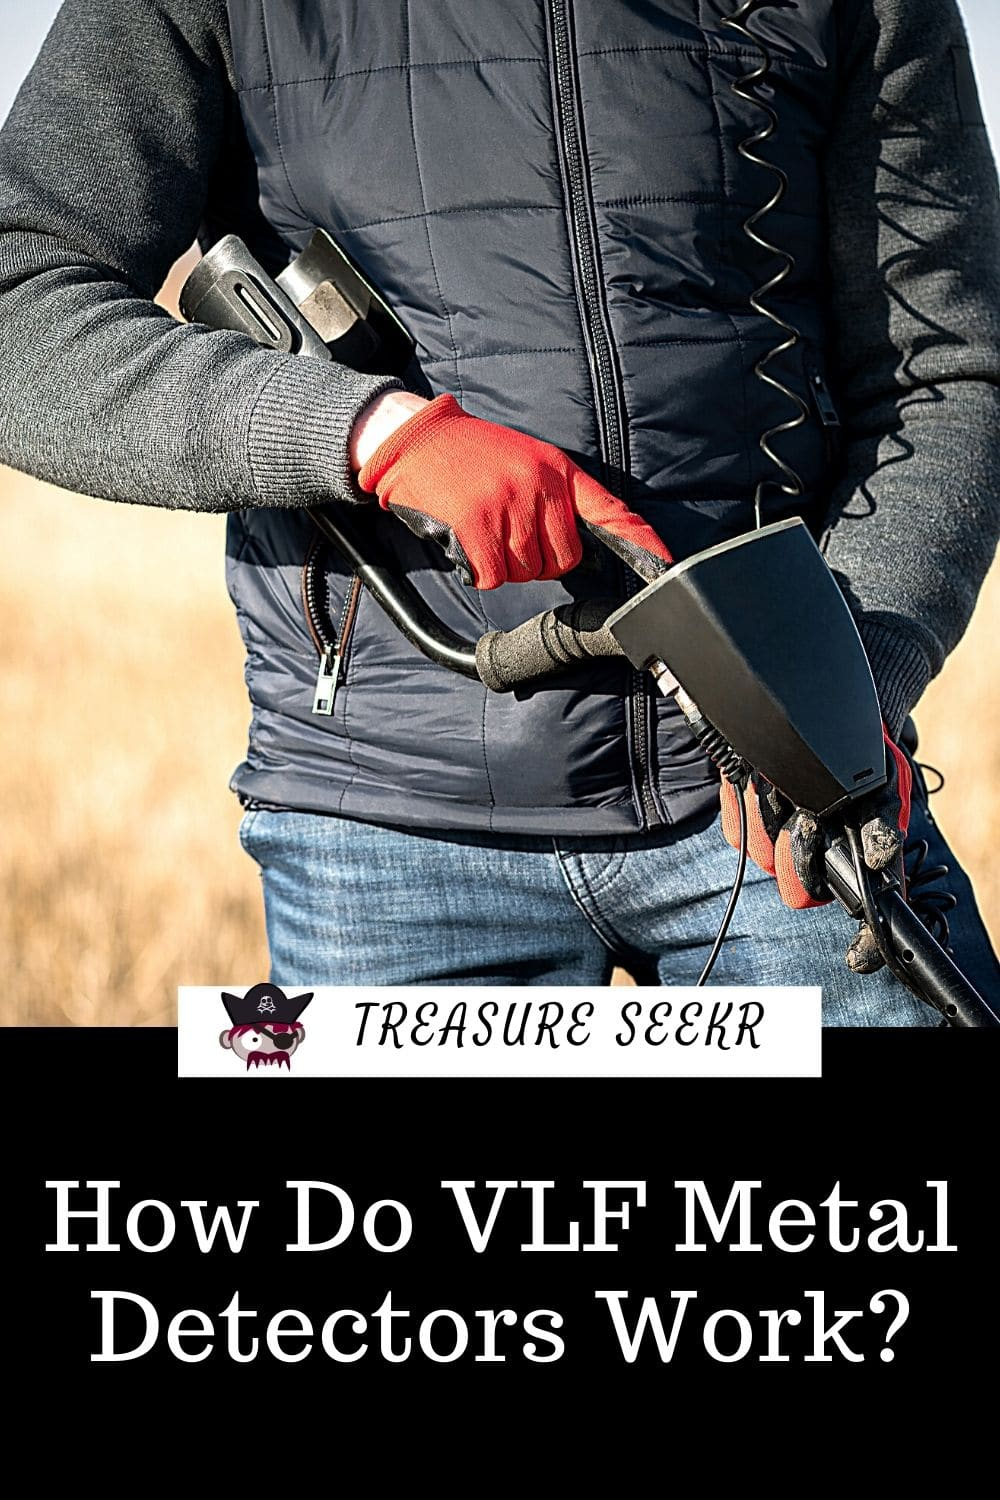 How Do VLF Metal Detectors Work